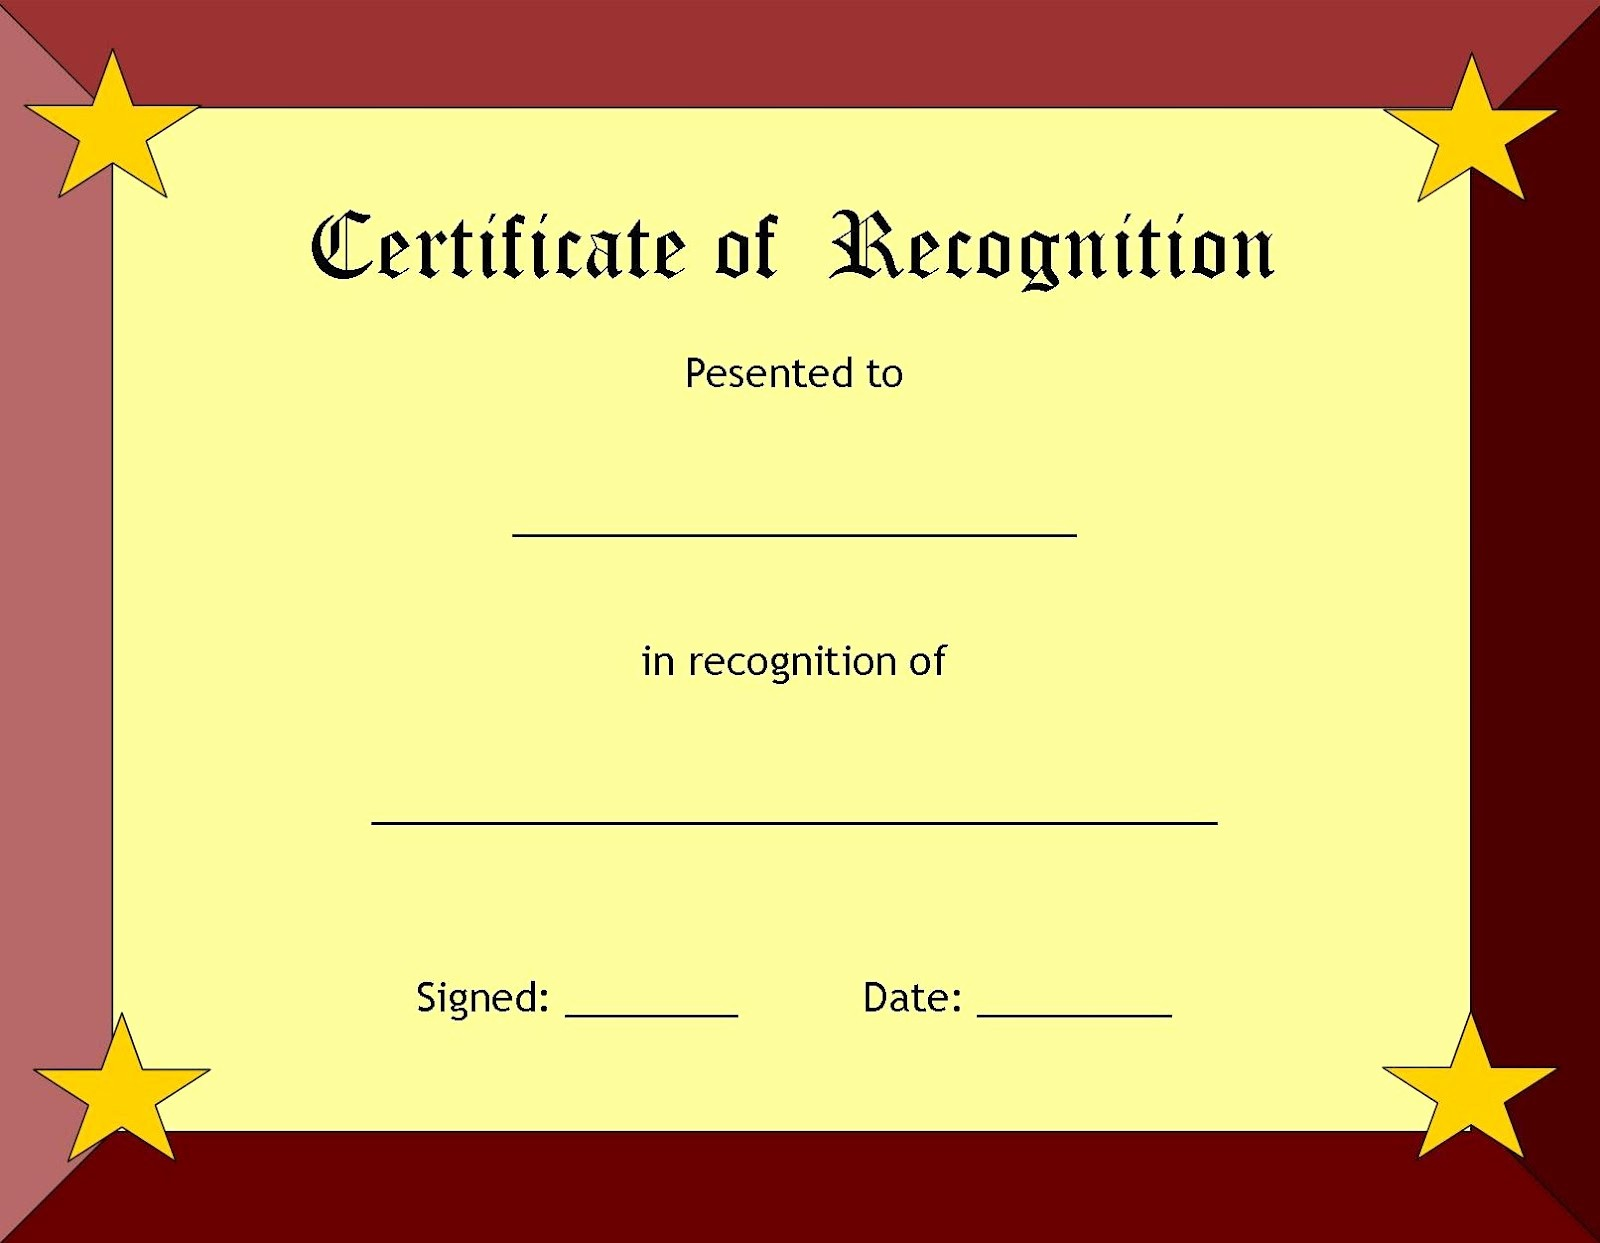 Certificate Of Recognition Editable Template Inspirational Blank Certificate Templates